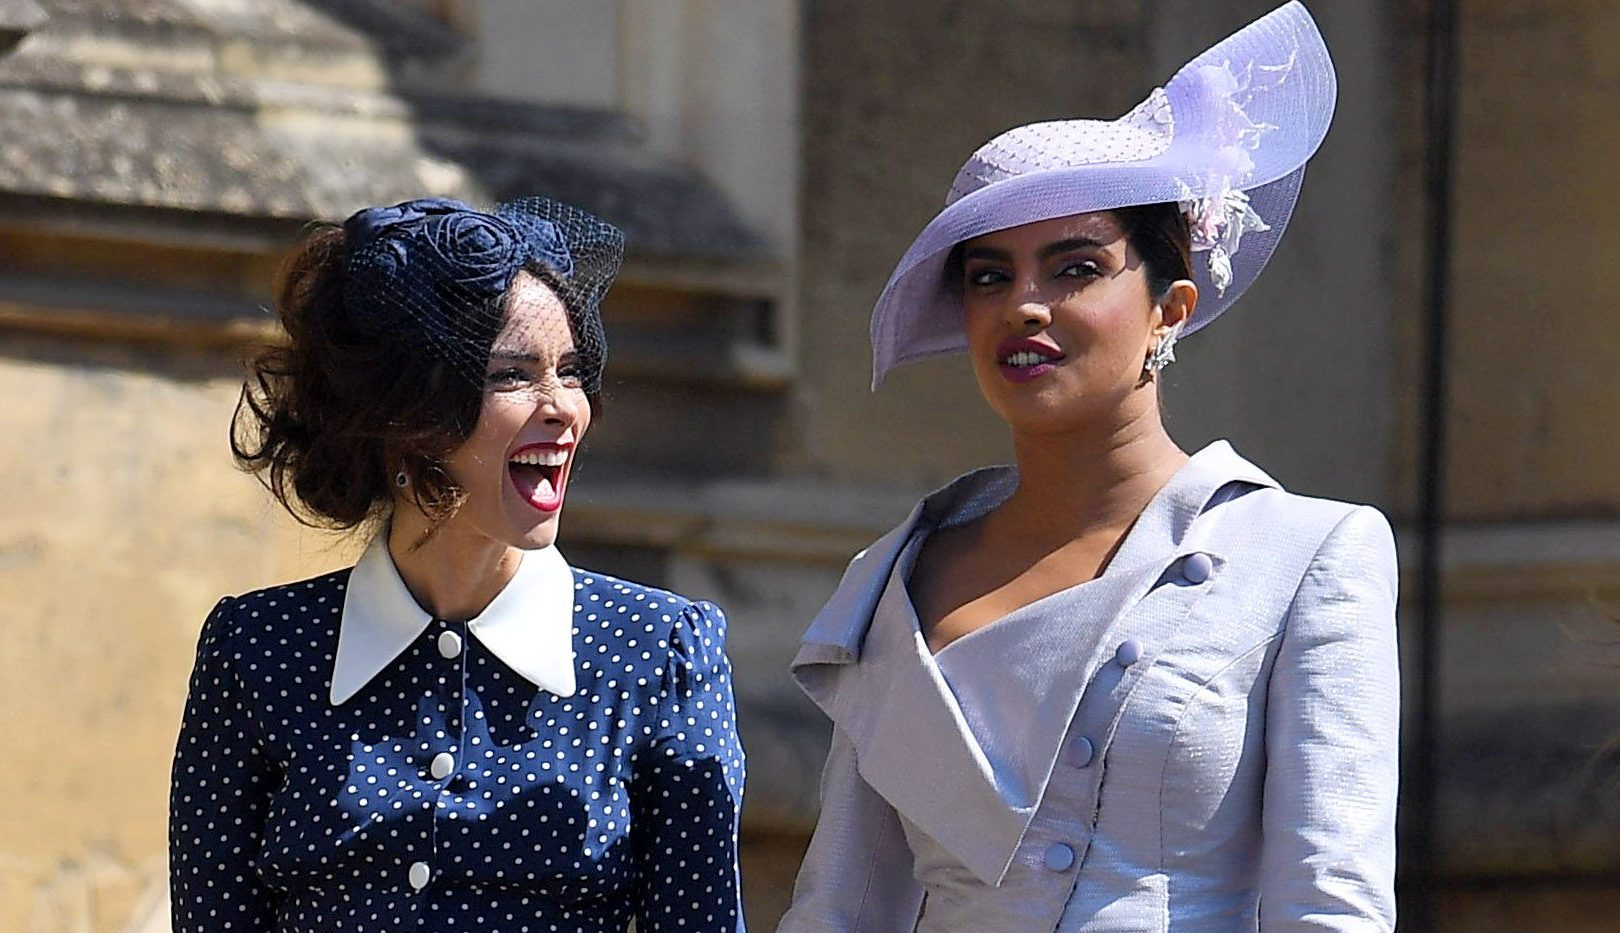 Abigail Spencer and Priyanka Chopra wearing fascinators